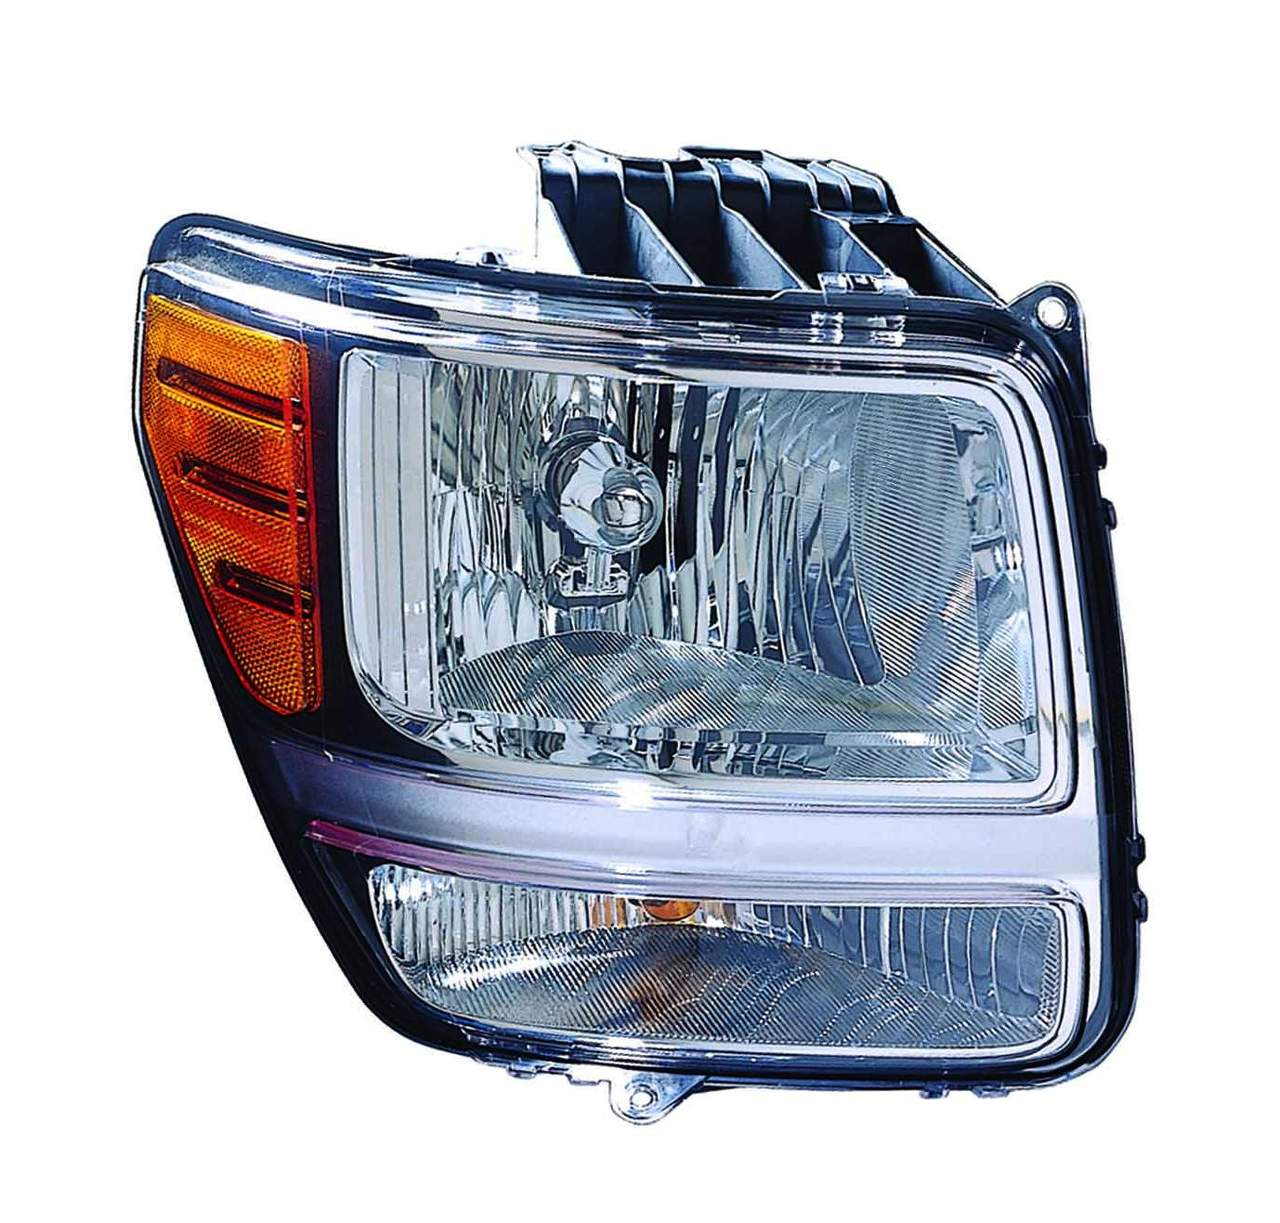 Dodge Nitro 2007 2008 2009 2010 2011 right passenger headlight